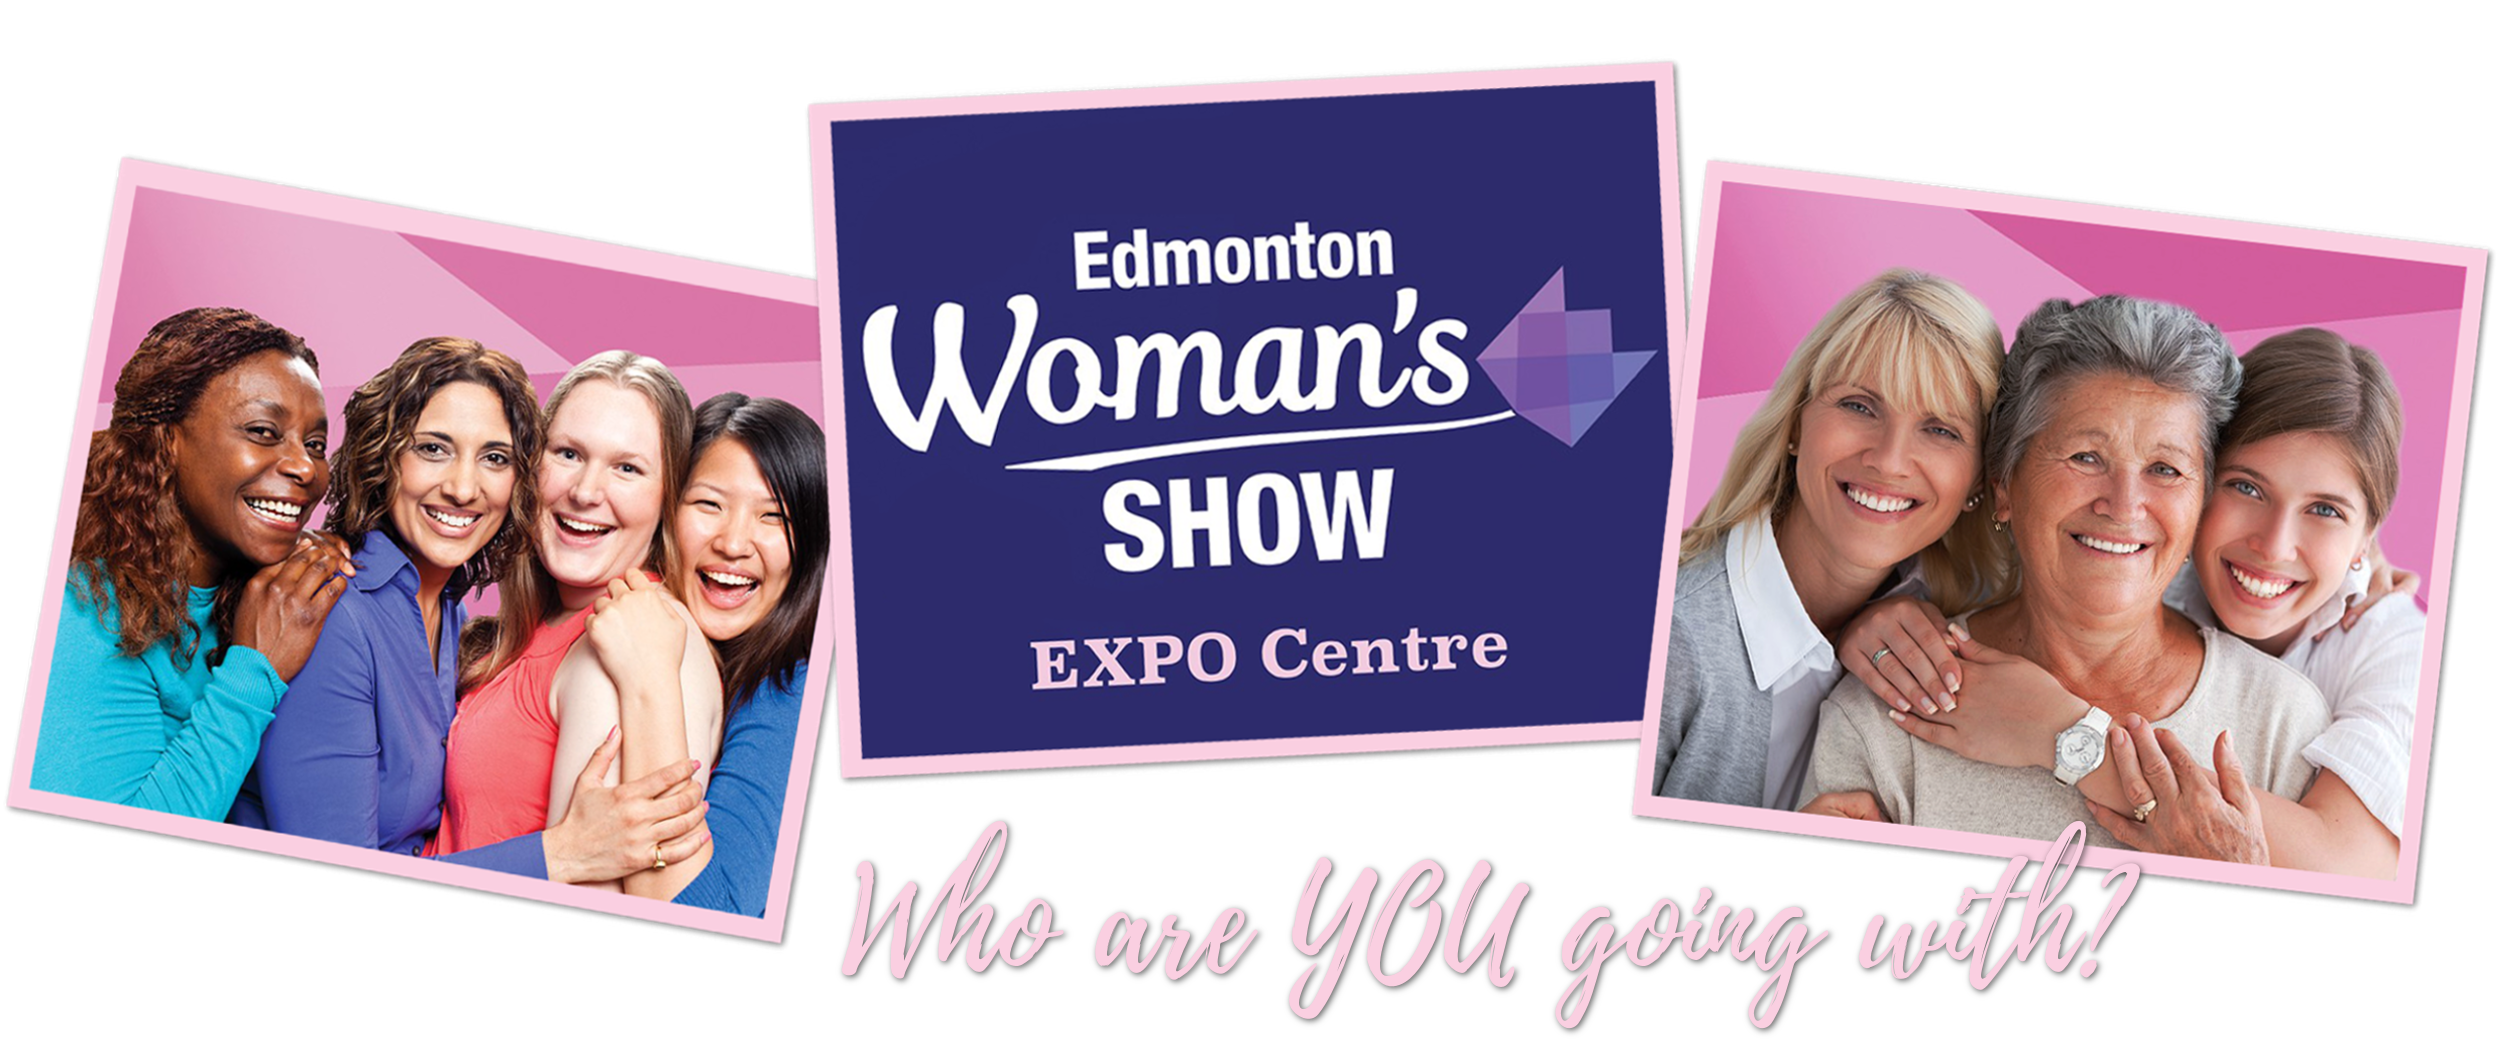 The Edmonton Woman's Show... Who are YOU going with?